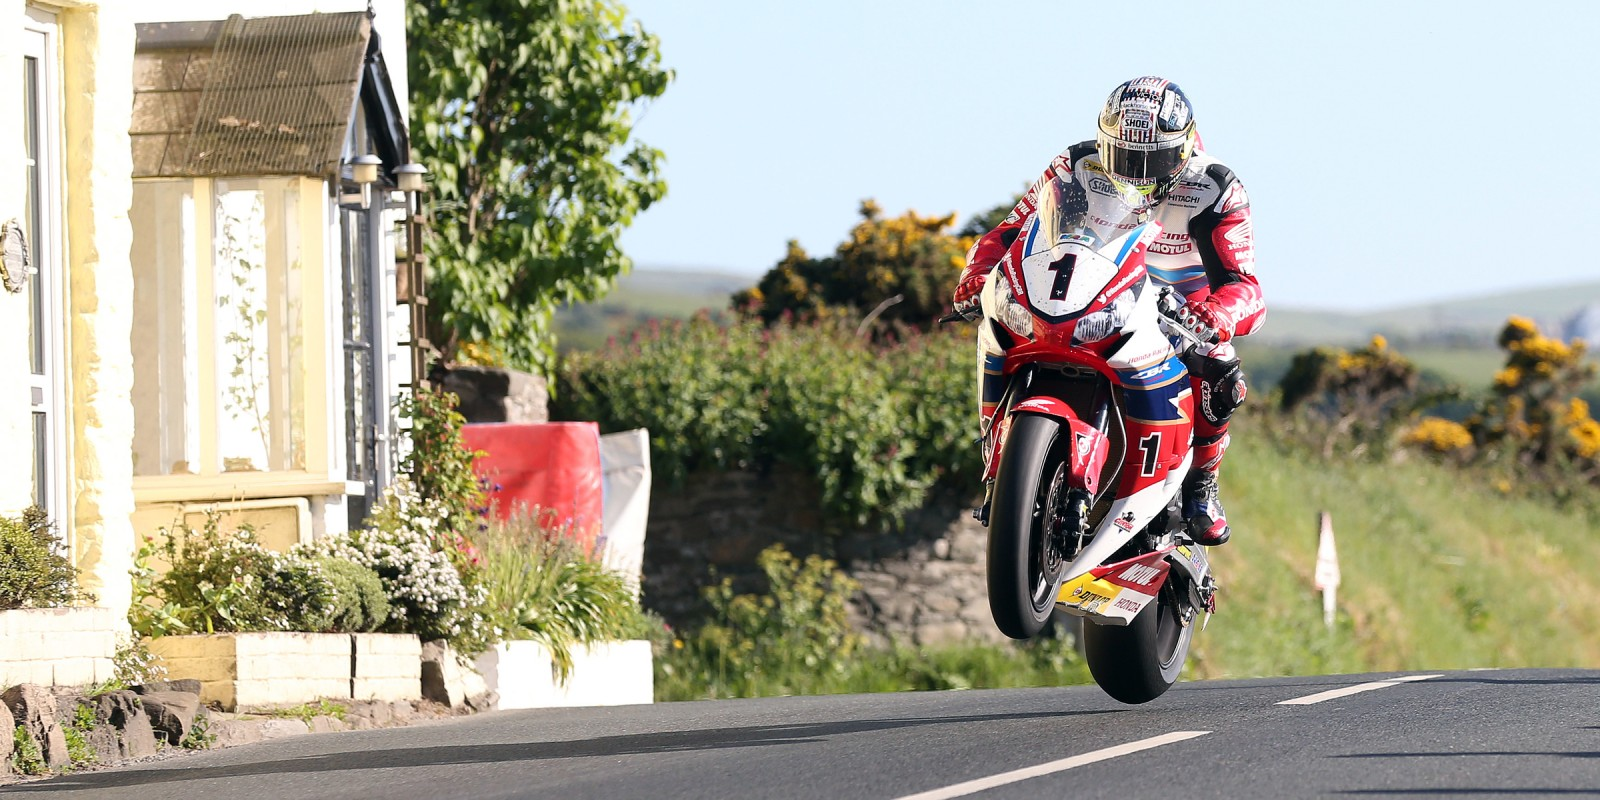 Images from the 2016 Isle of Man TT - 3rd June